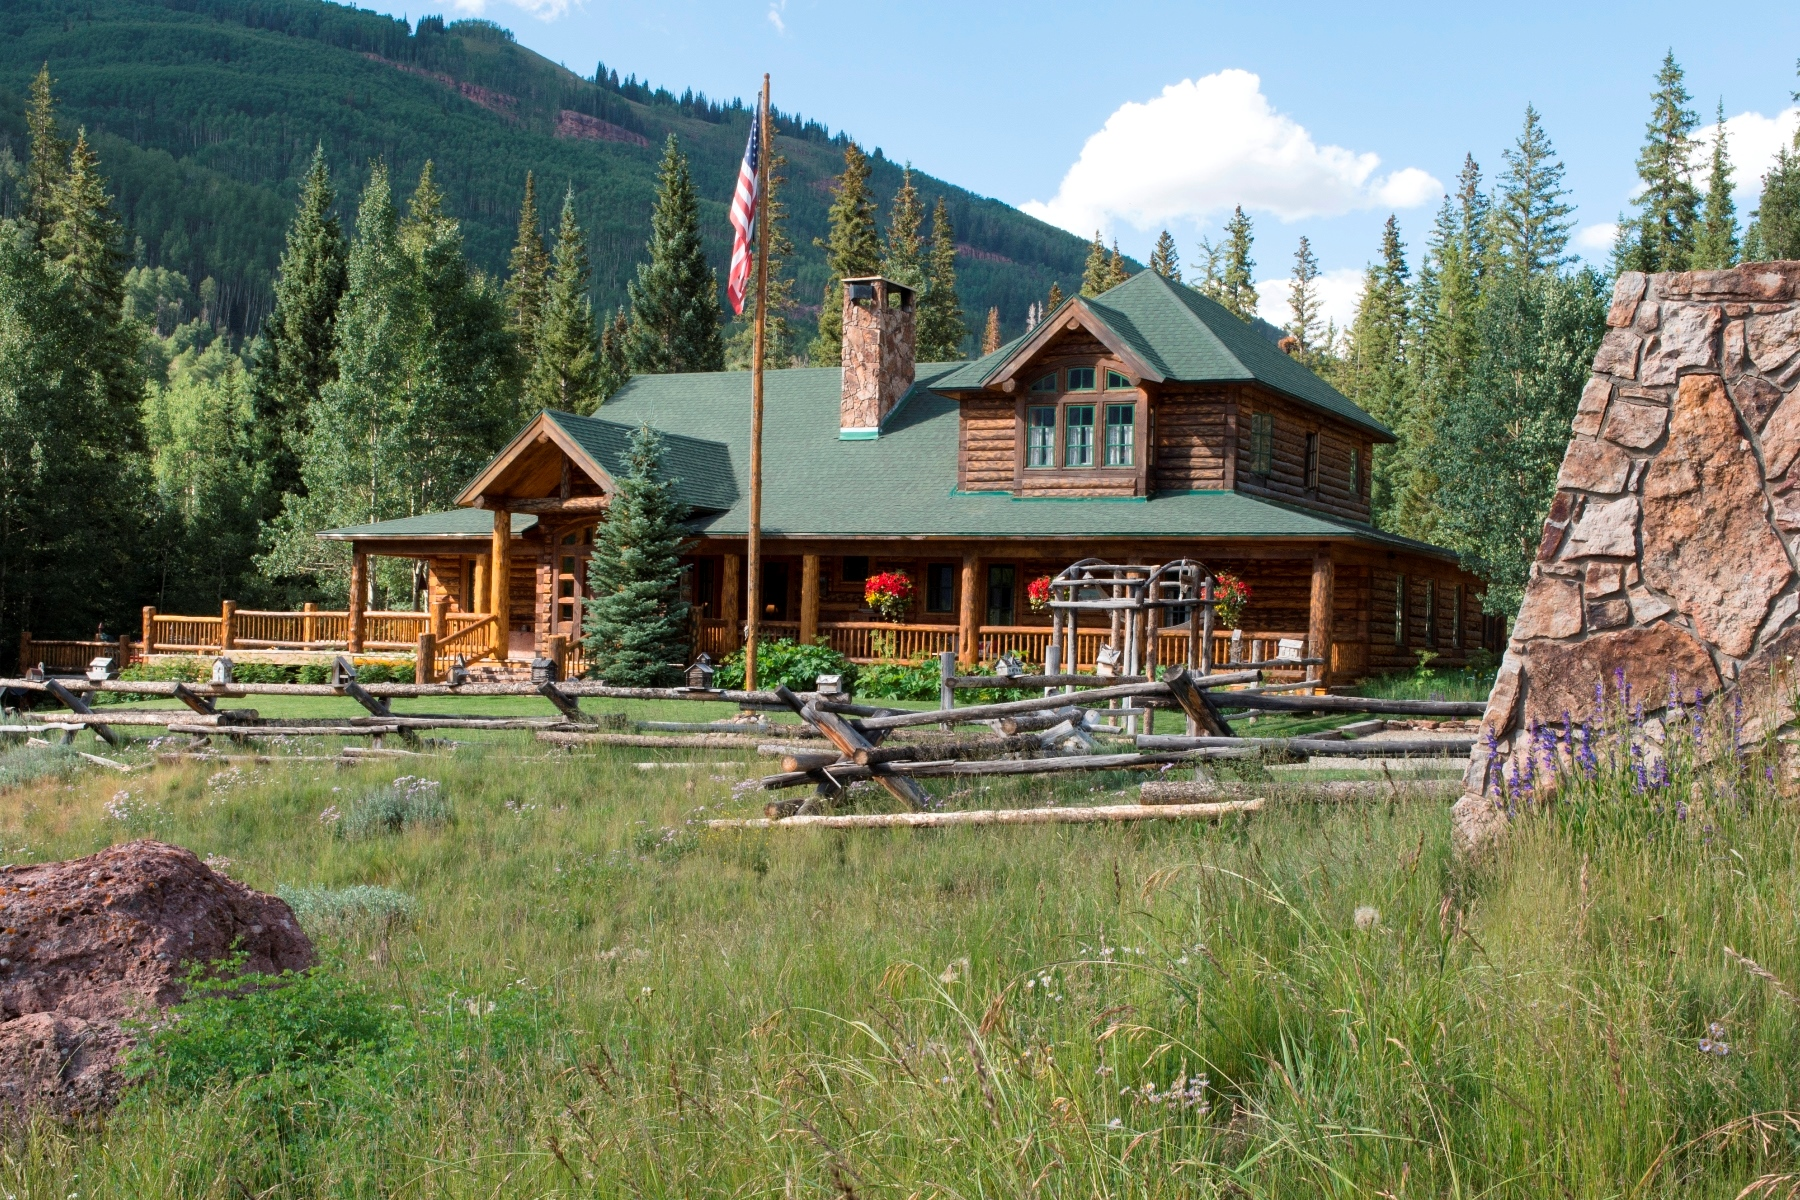 Maison unifamiliale pour l Vente à Double Top Ranch 6470 County Road 740 Crested Butte, Colorado, 81224 États-Unis